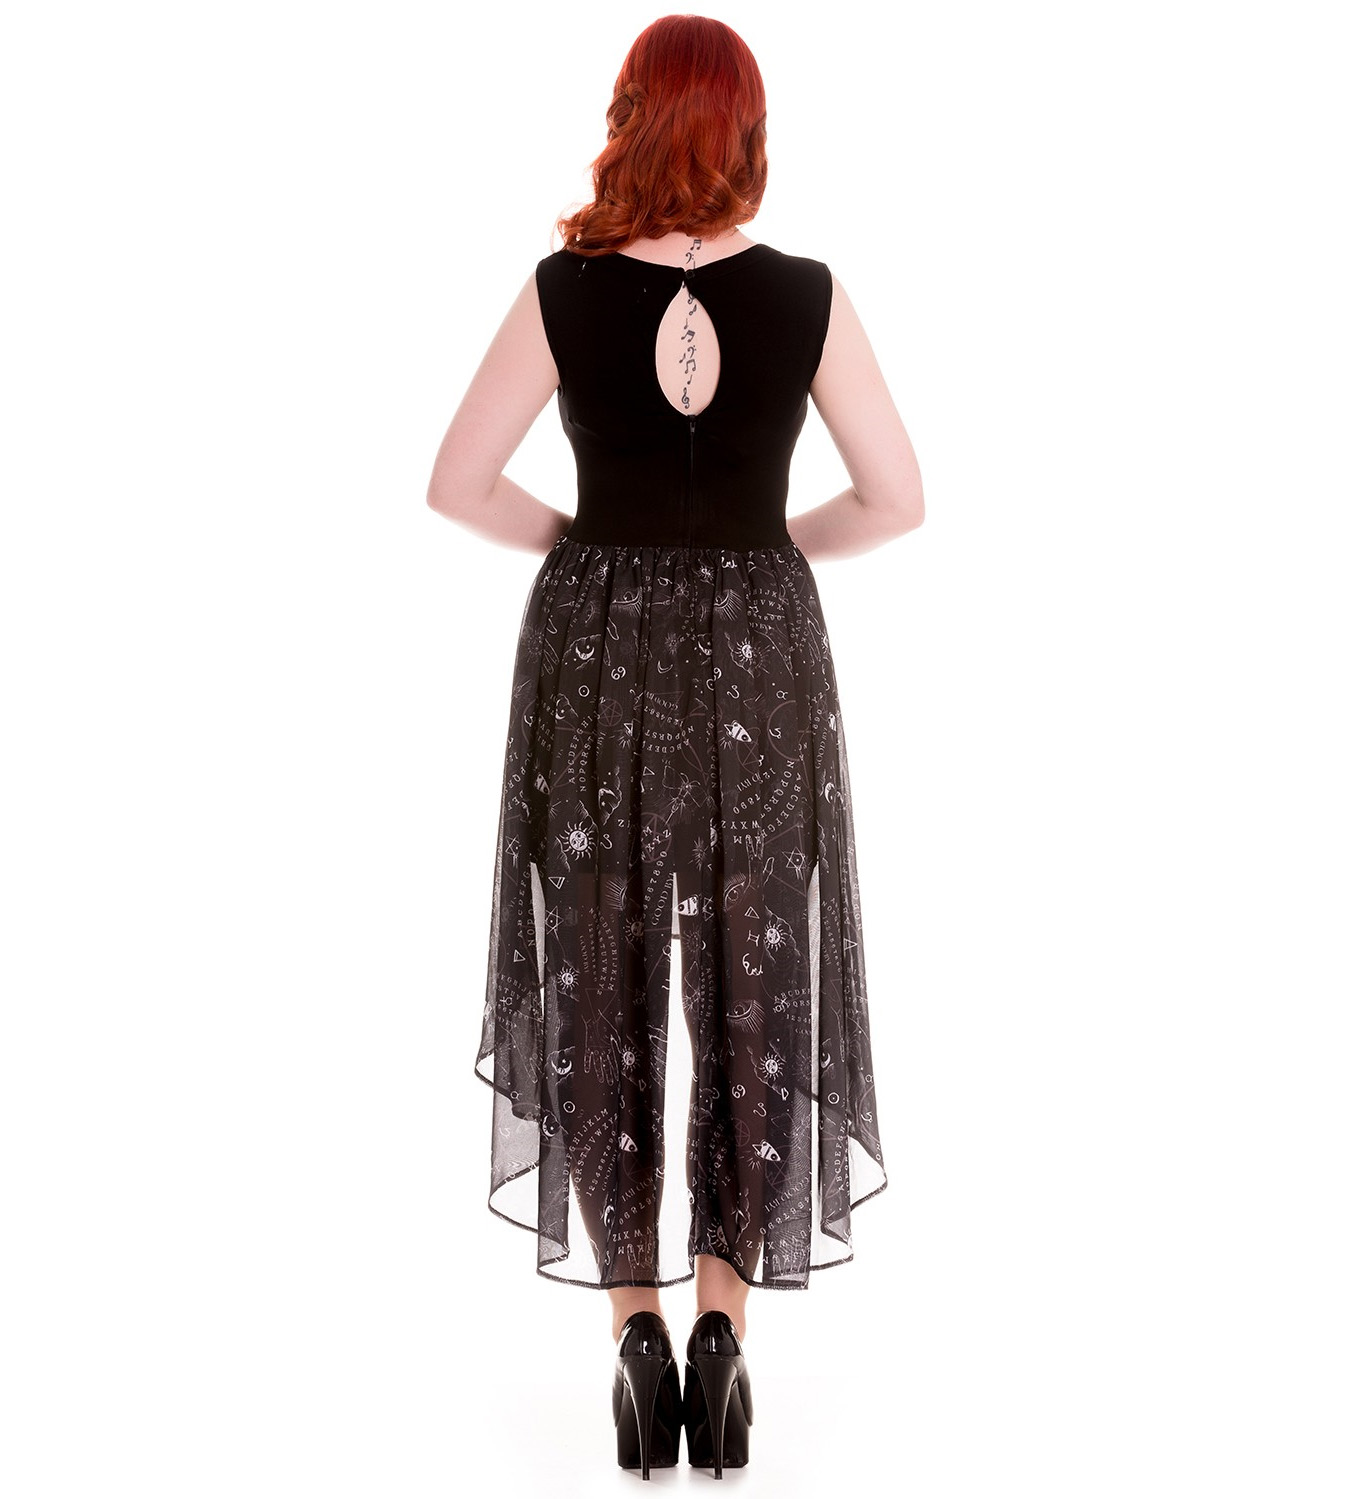 HELL-BUNNY-Spin-Doctor-Goth-Black-Witch-Ouija-SPIRIT-Dress-All-Sizes thumbnail 9